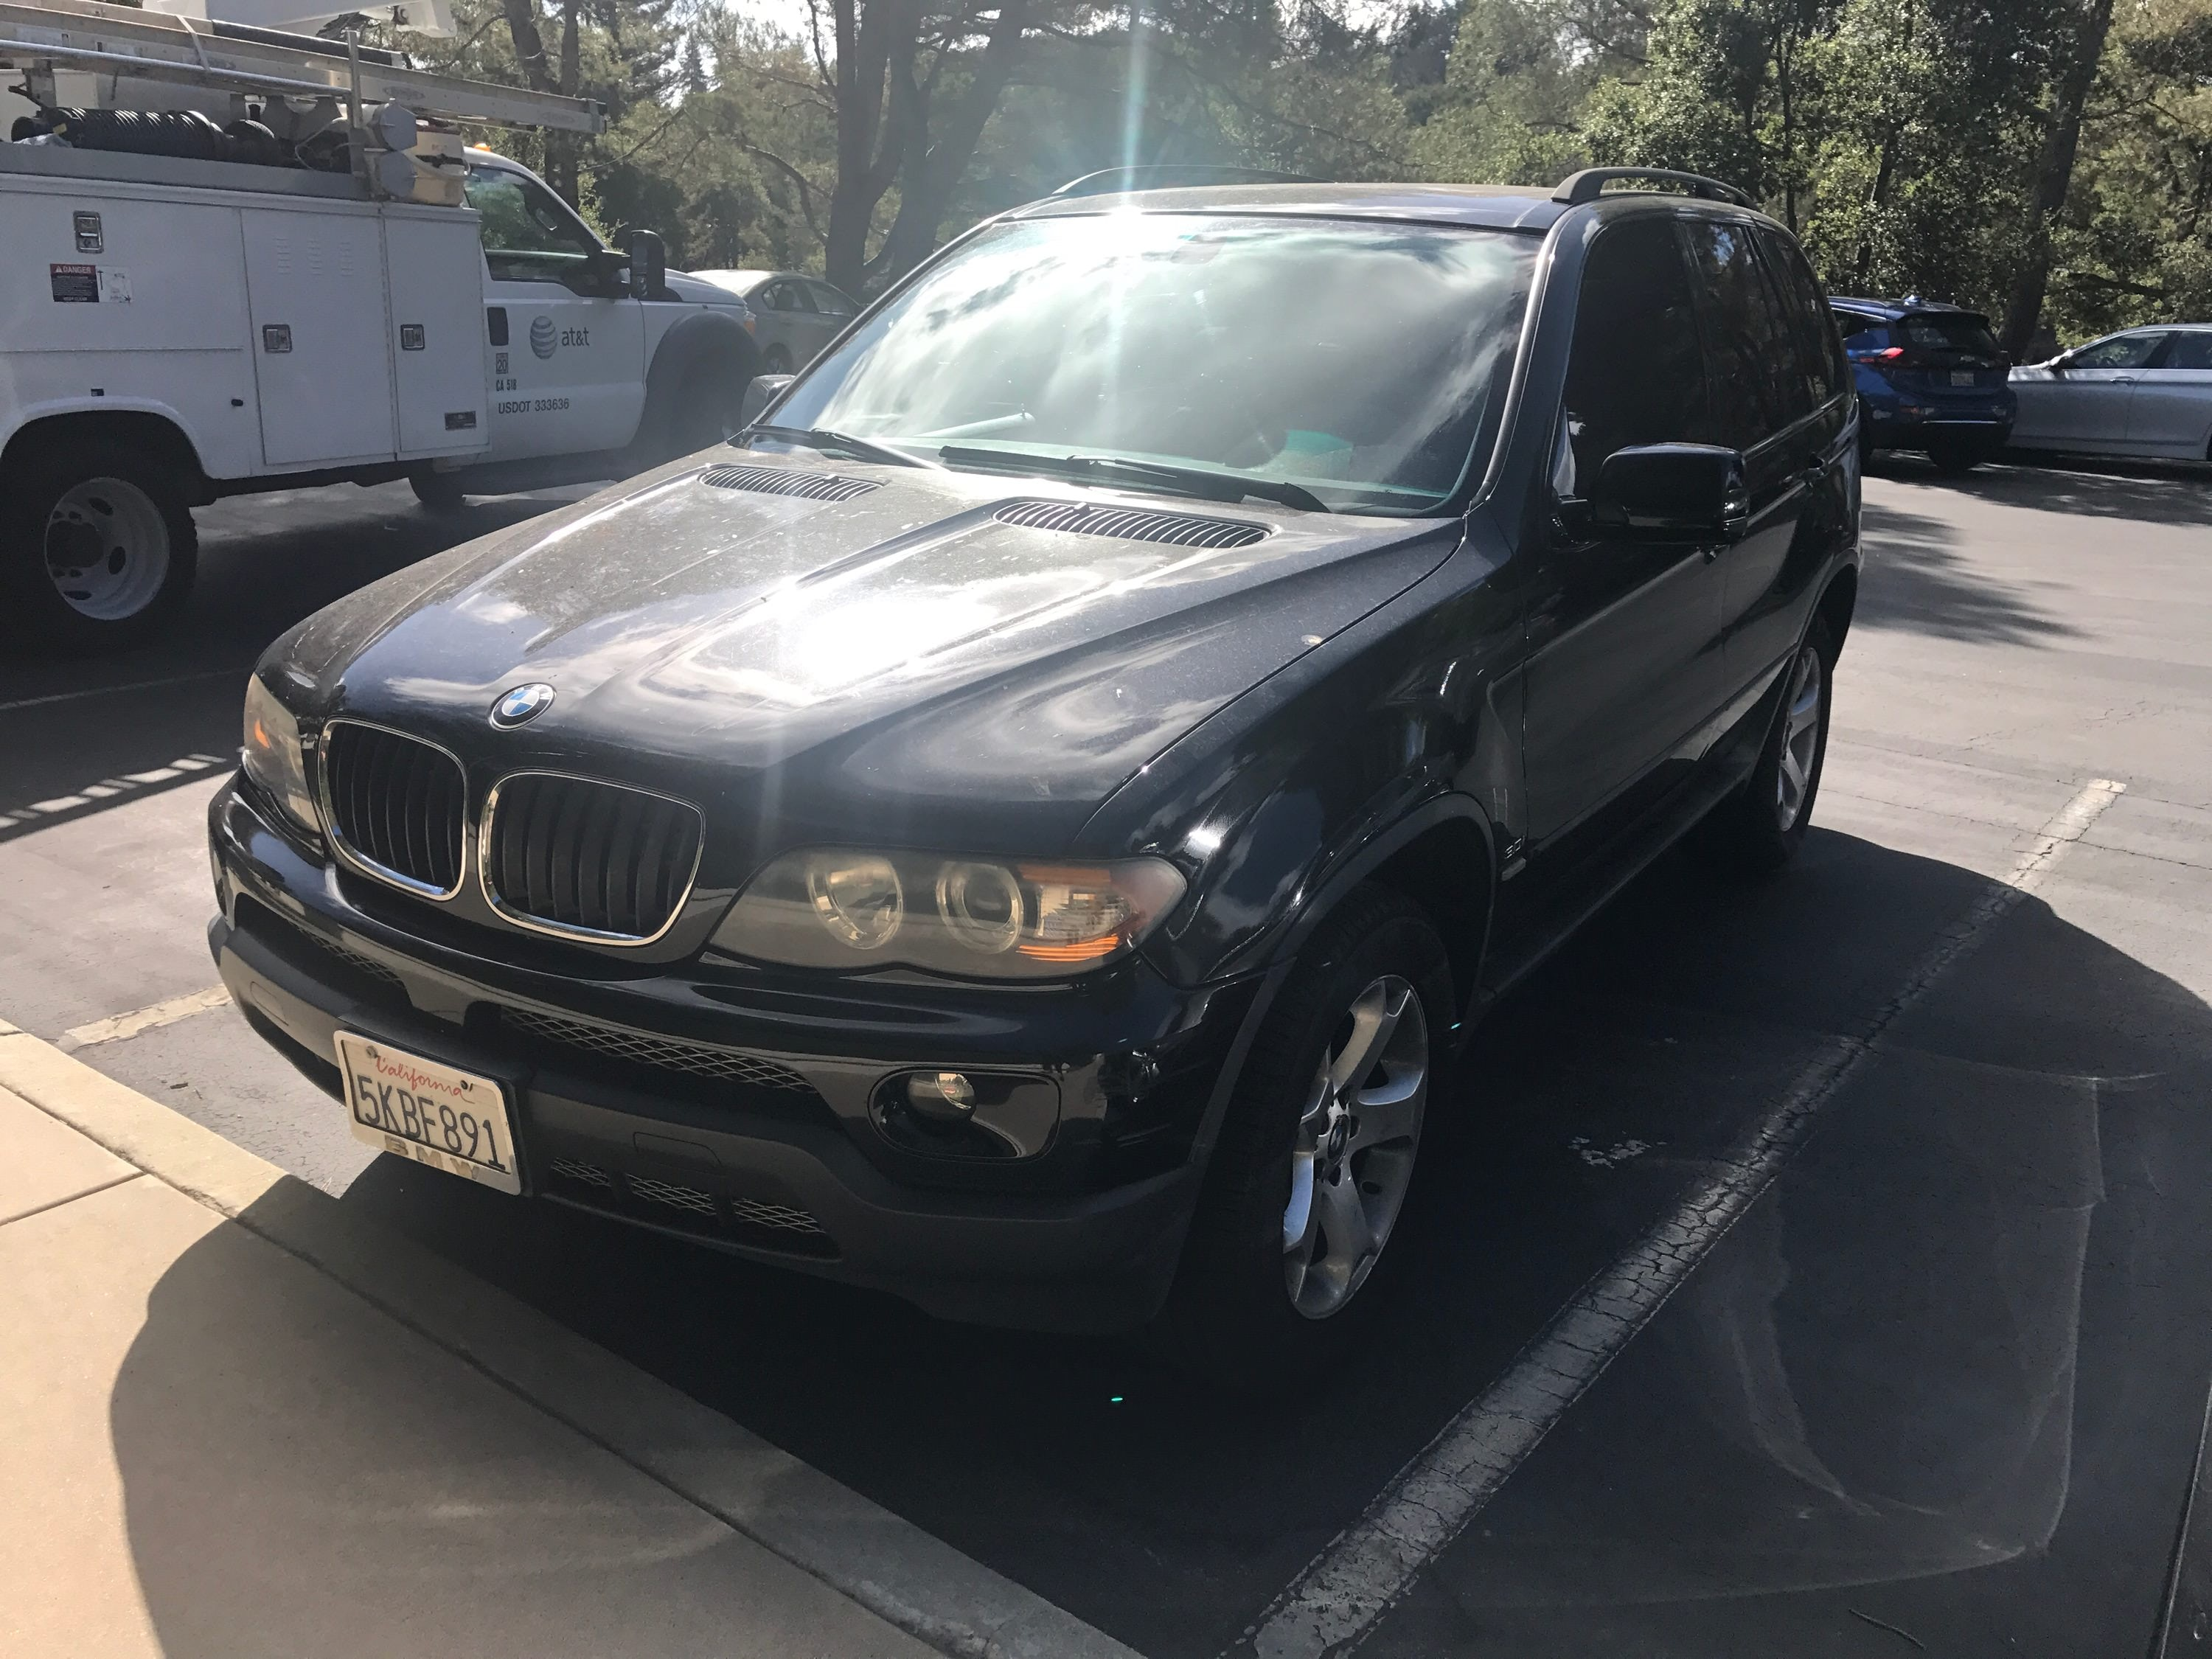 Junk 2004 BMW X5 in Menlo Park